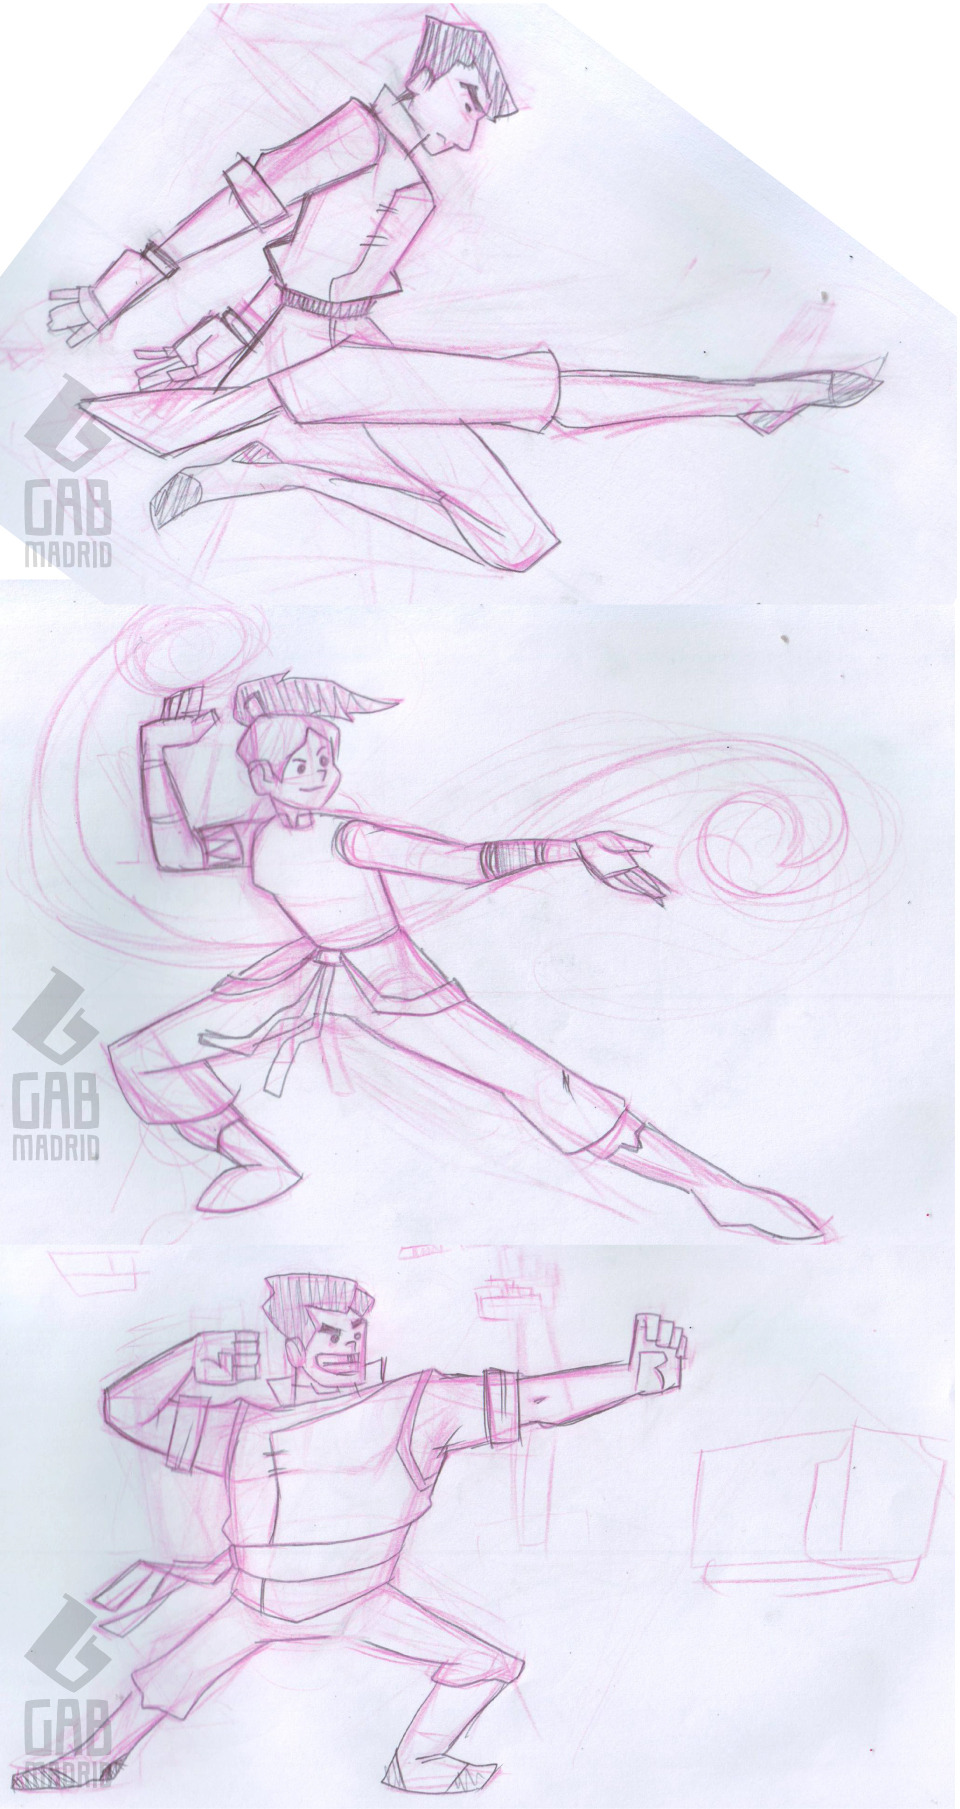 Fire Ferrets sketch!Have you seen the Legend of Korra premiere on Nickelodeon today? Watched it a couple of hours ago on a livestream by Korralations on Ustream. 2 Episodes, back-to-back! Way to start the series! (Note: Didn't watch it today for the first time though; I have watched the 900MB 720p file of the 2-episode premiere about a month ago. Just wanted to see it again, with ads and all. Plus, fanboying together with a few members of the fandom is cool, too.) Mako looks like he's dancing here. Fixed that while I was inking on this one. Will upload the inked version soon. HOLD THE PHONE. STOP THE PRESSES. FRESH AND JUICY.